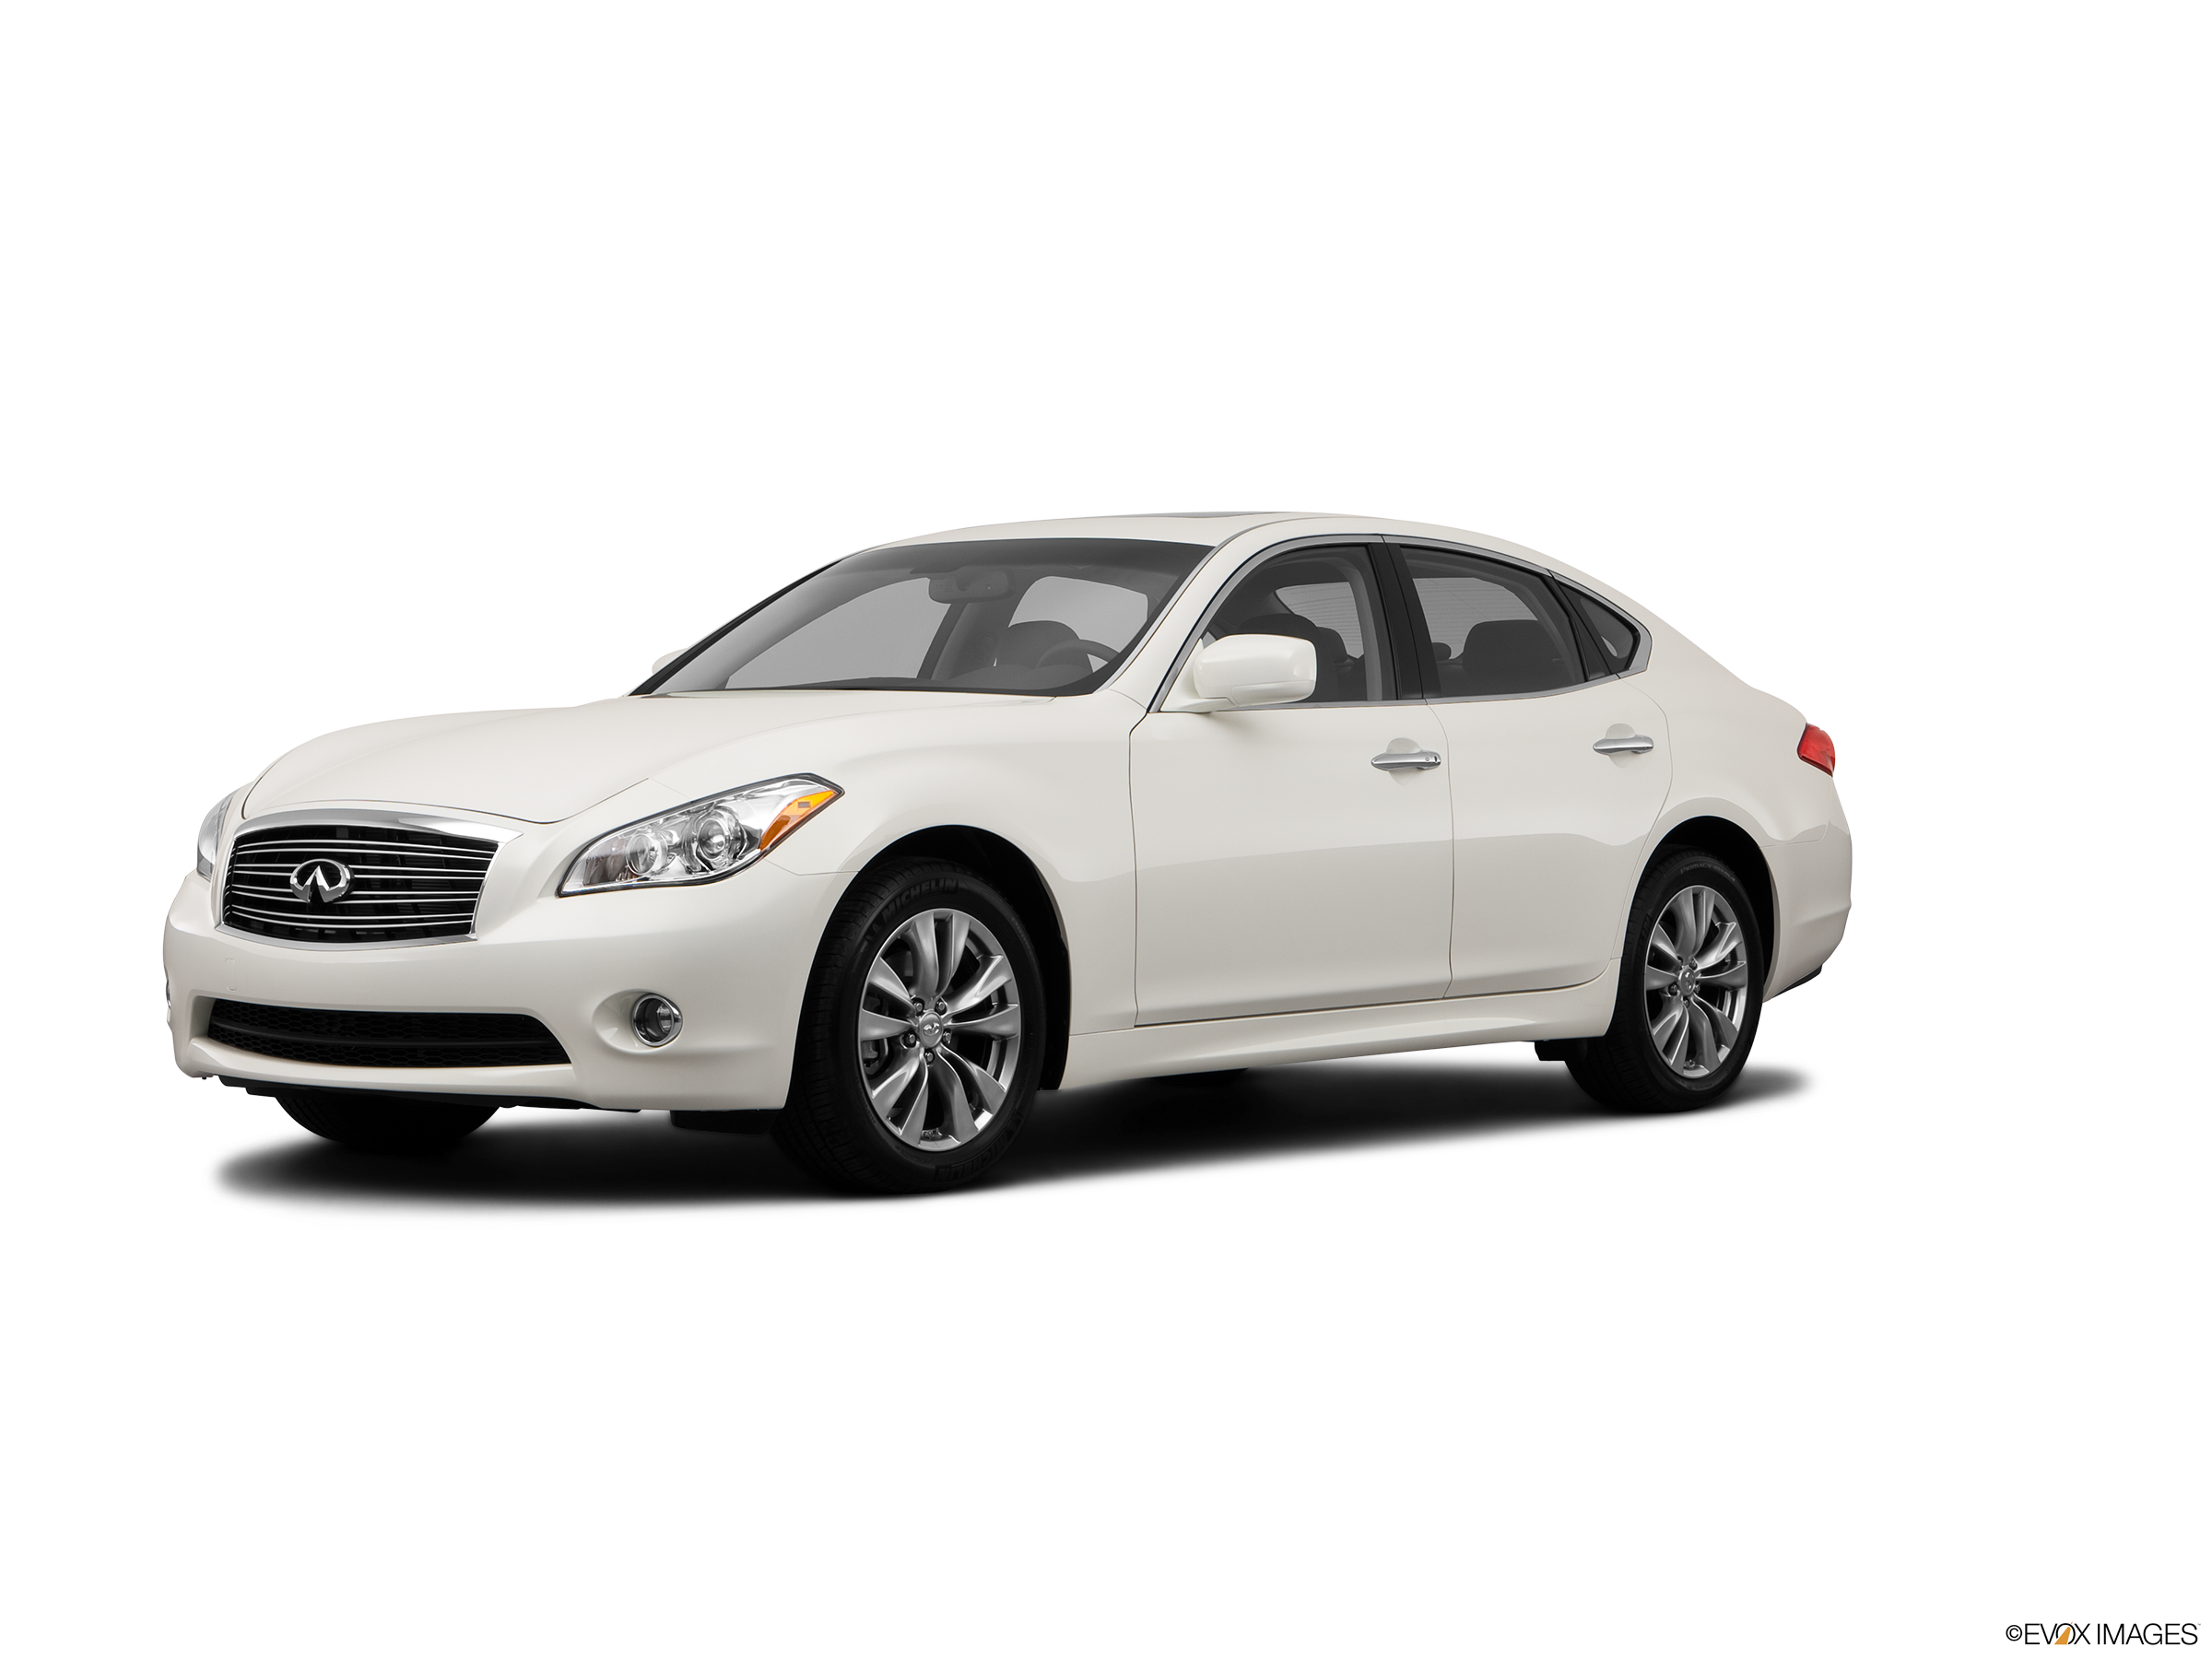 2012 infiniti m values cars for sale kelley blue book 2012 infiniti m values cars for sale